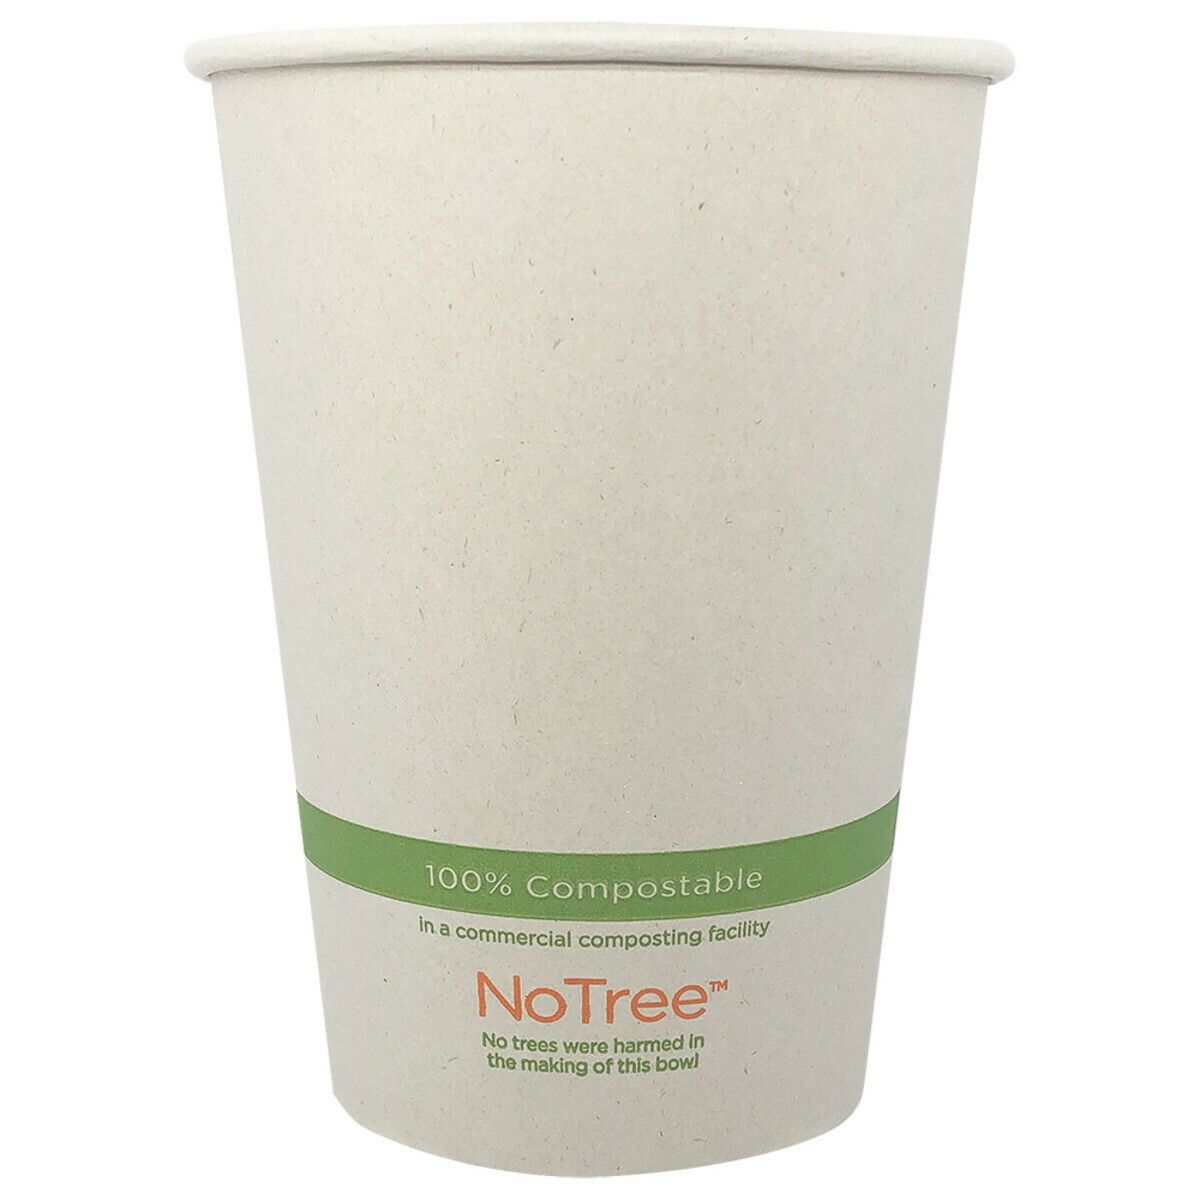 Case of 500 Units or Pack of 25 Units of Paper Bowl NoTree 32 oz